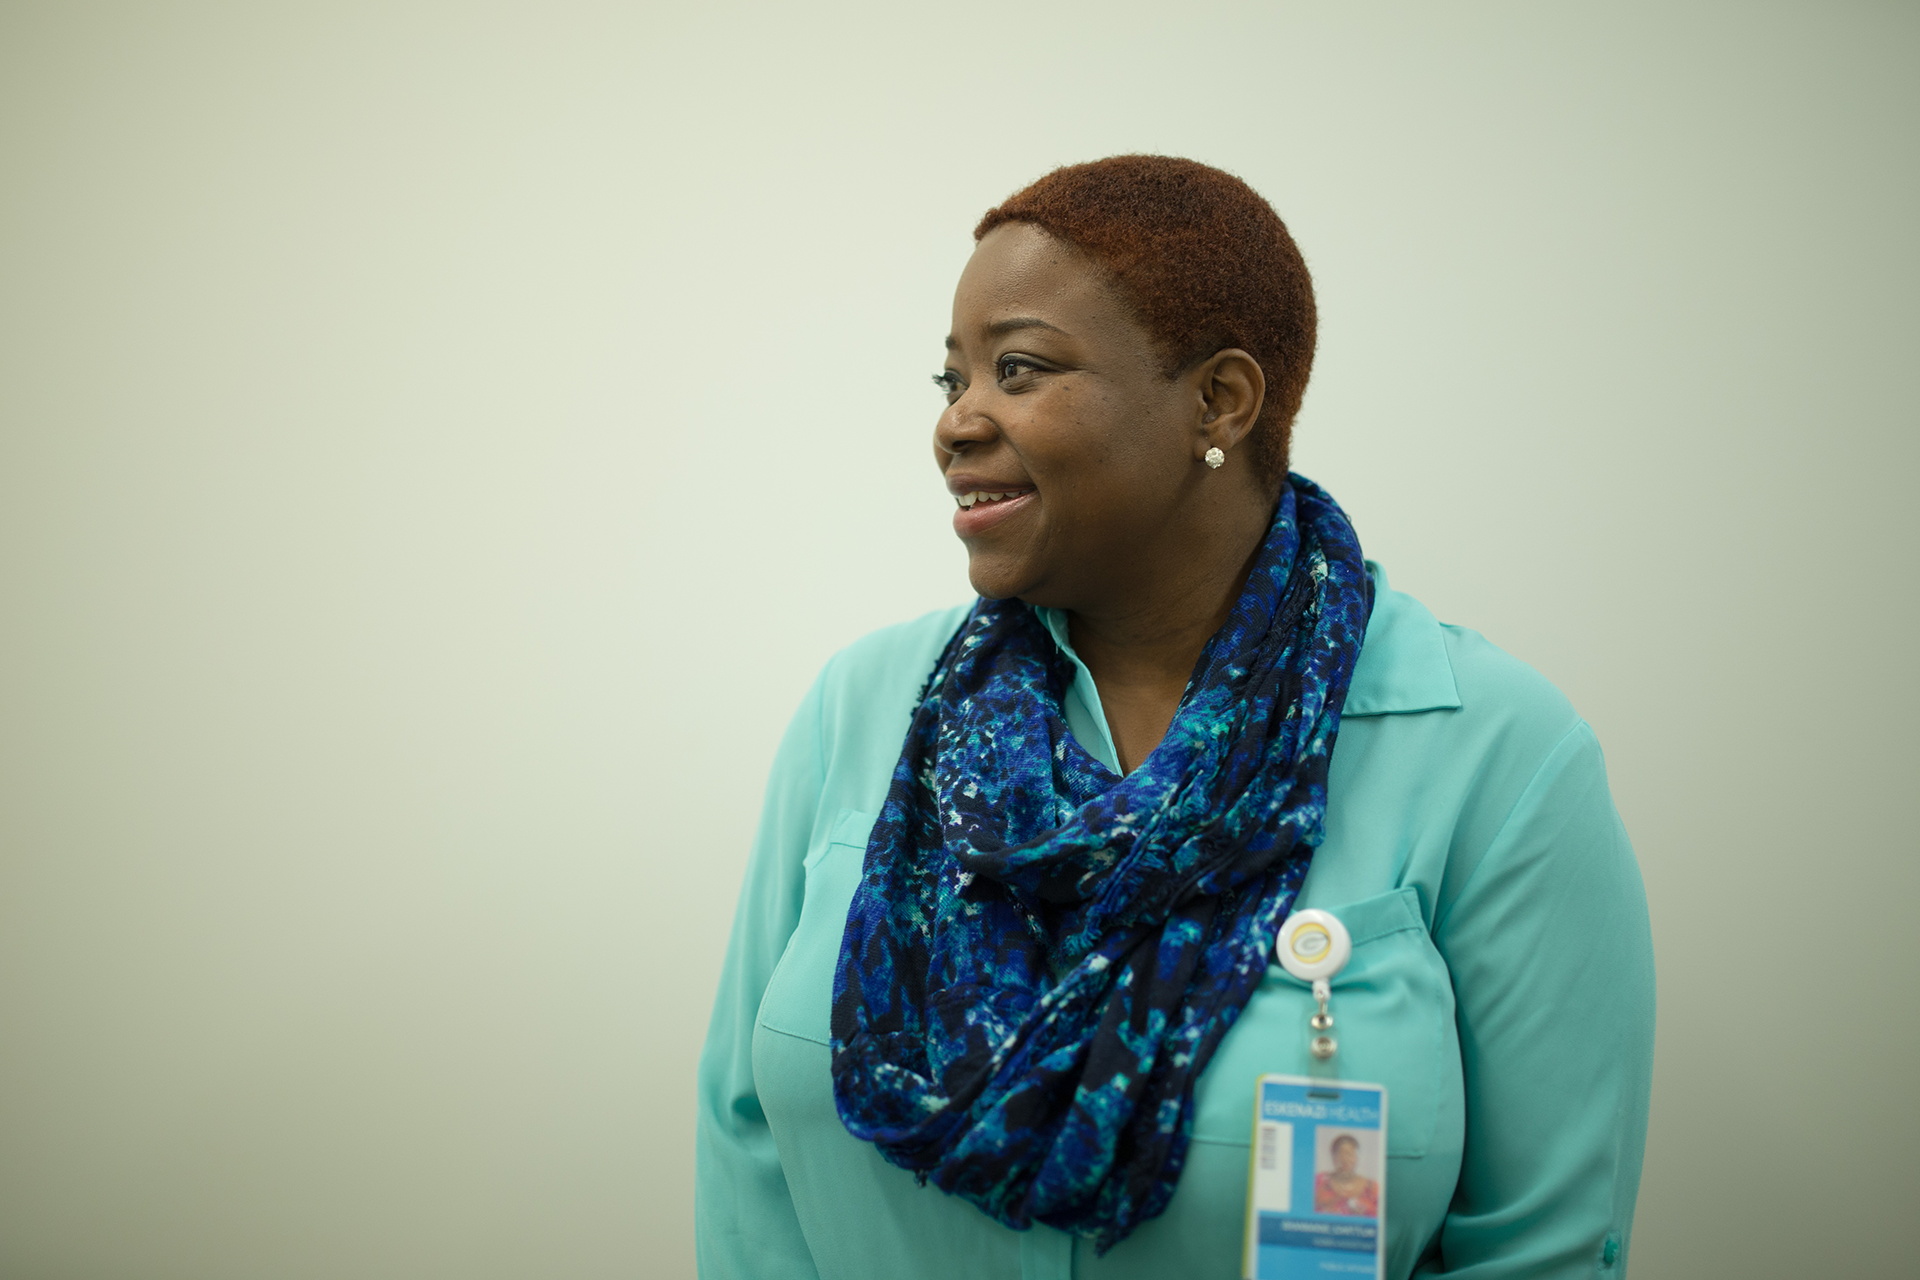 Denise is a graduate of the Nurse-Family Partnership program